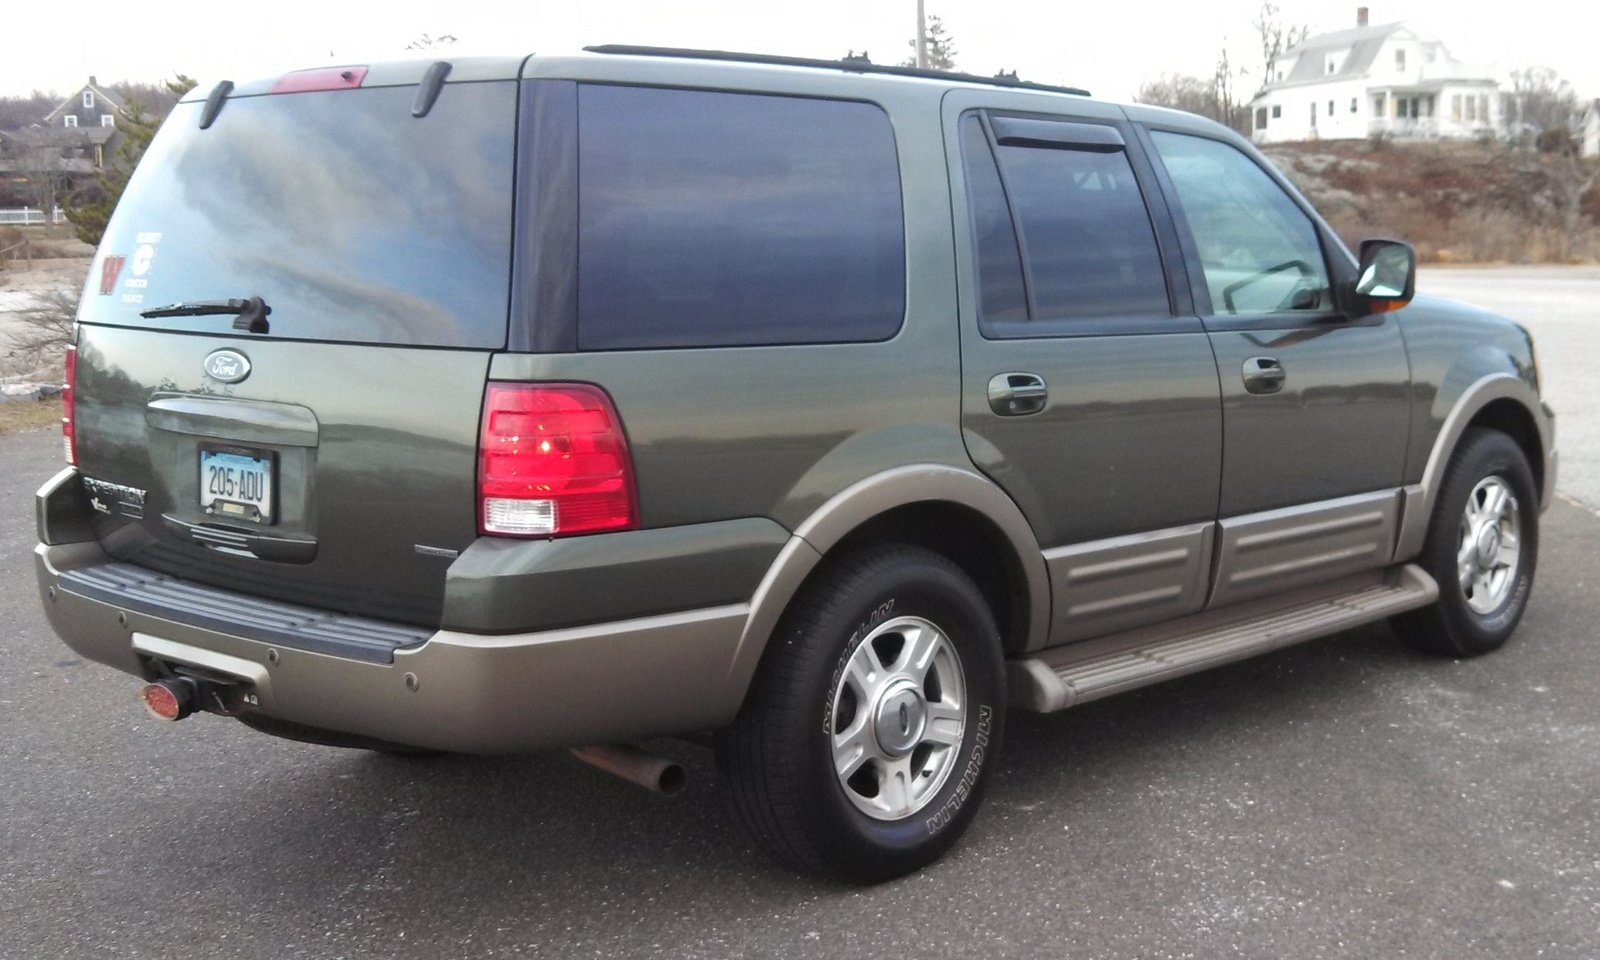 2003 ford expedition eddie bauer problems autos post for 1997 ford explorer window problems